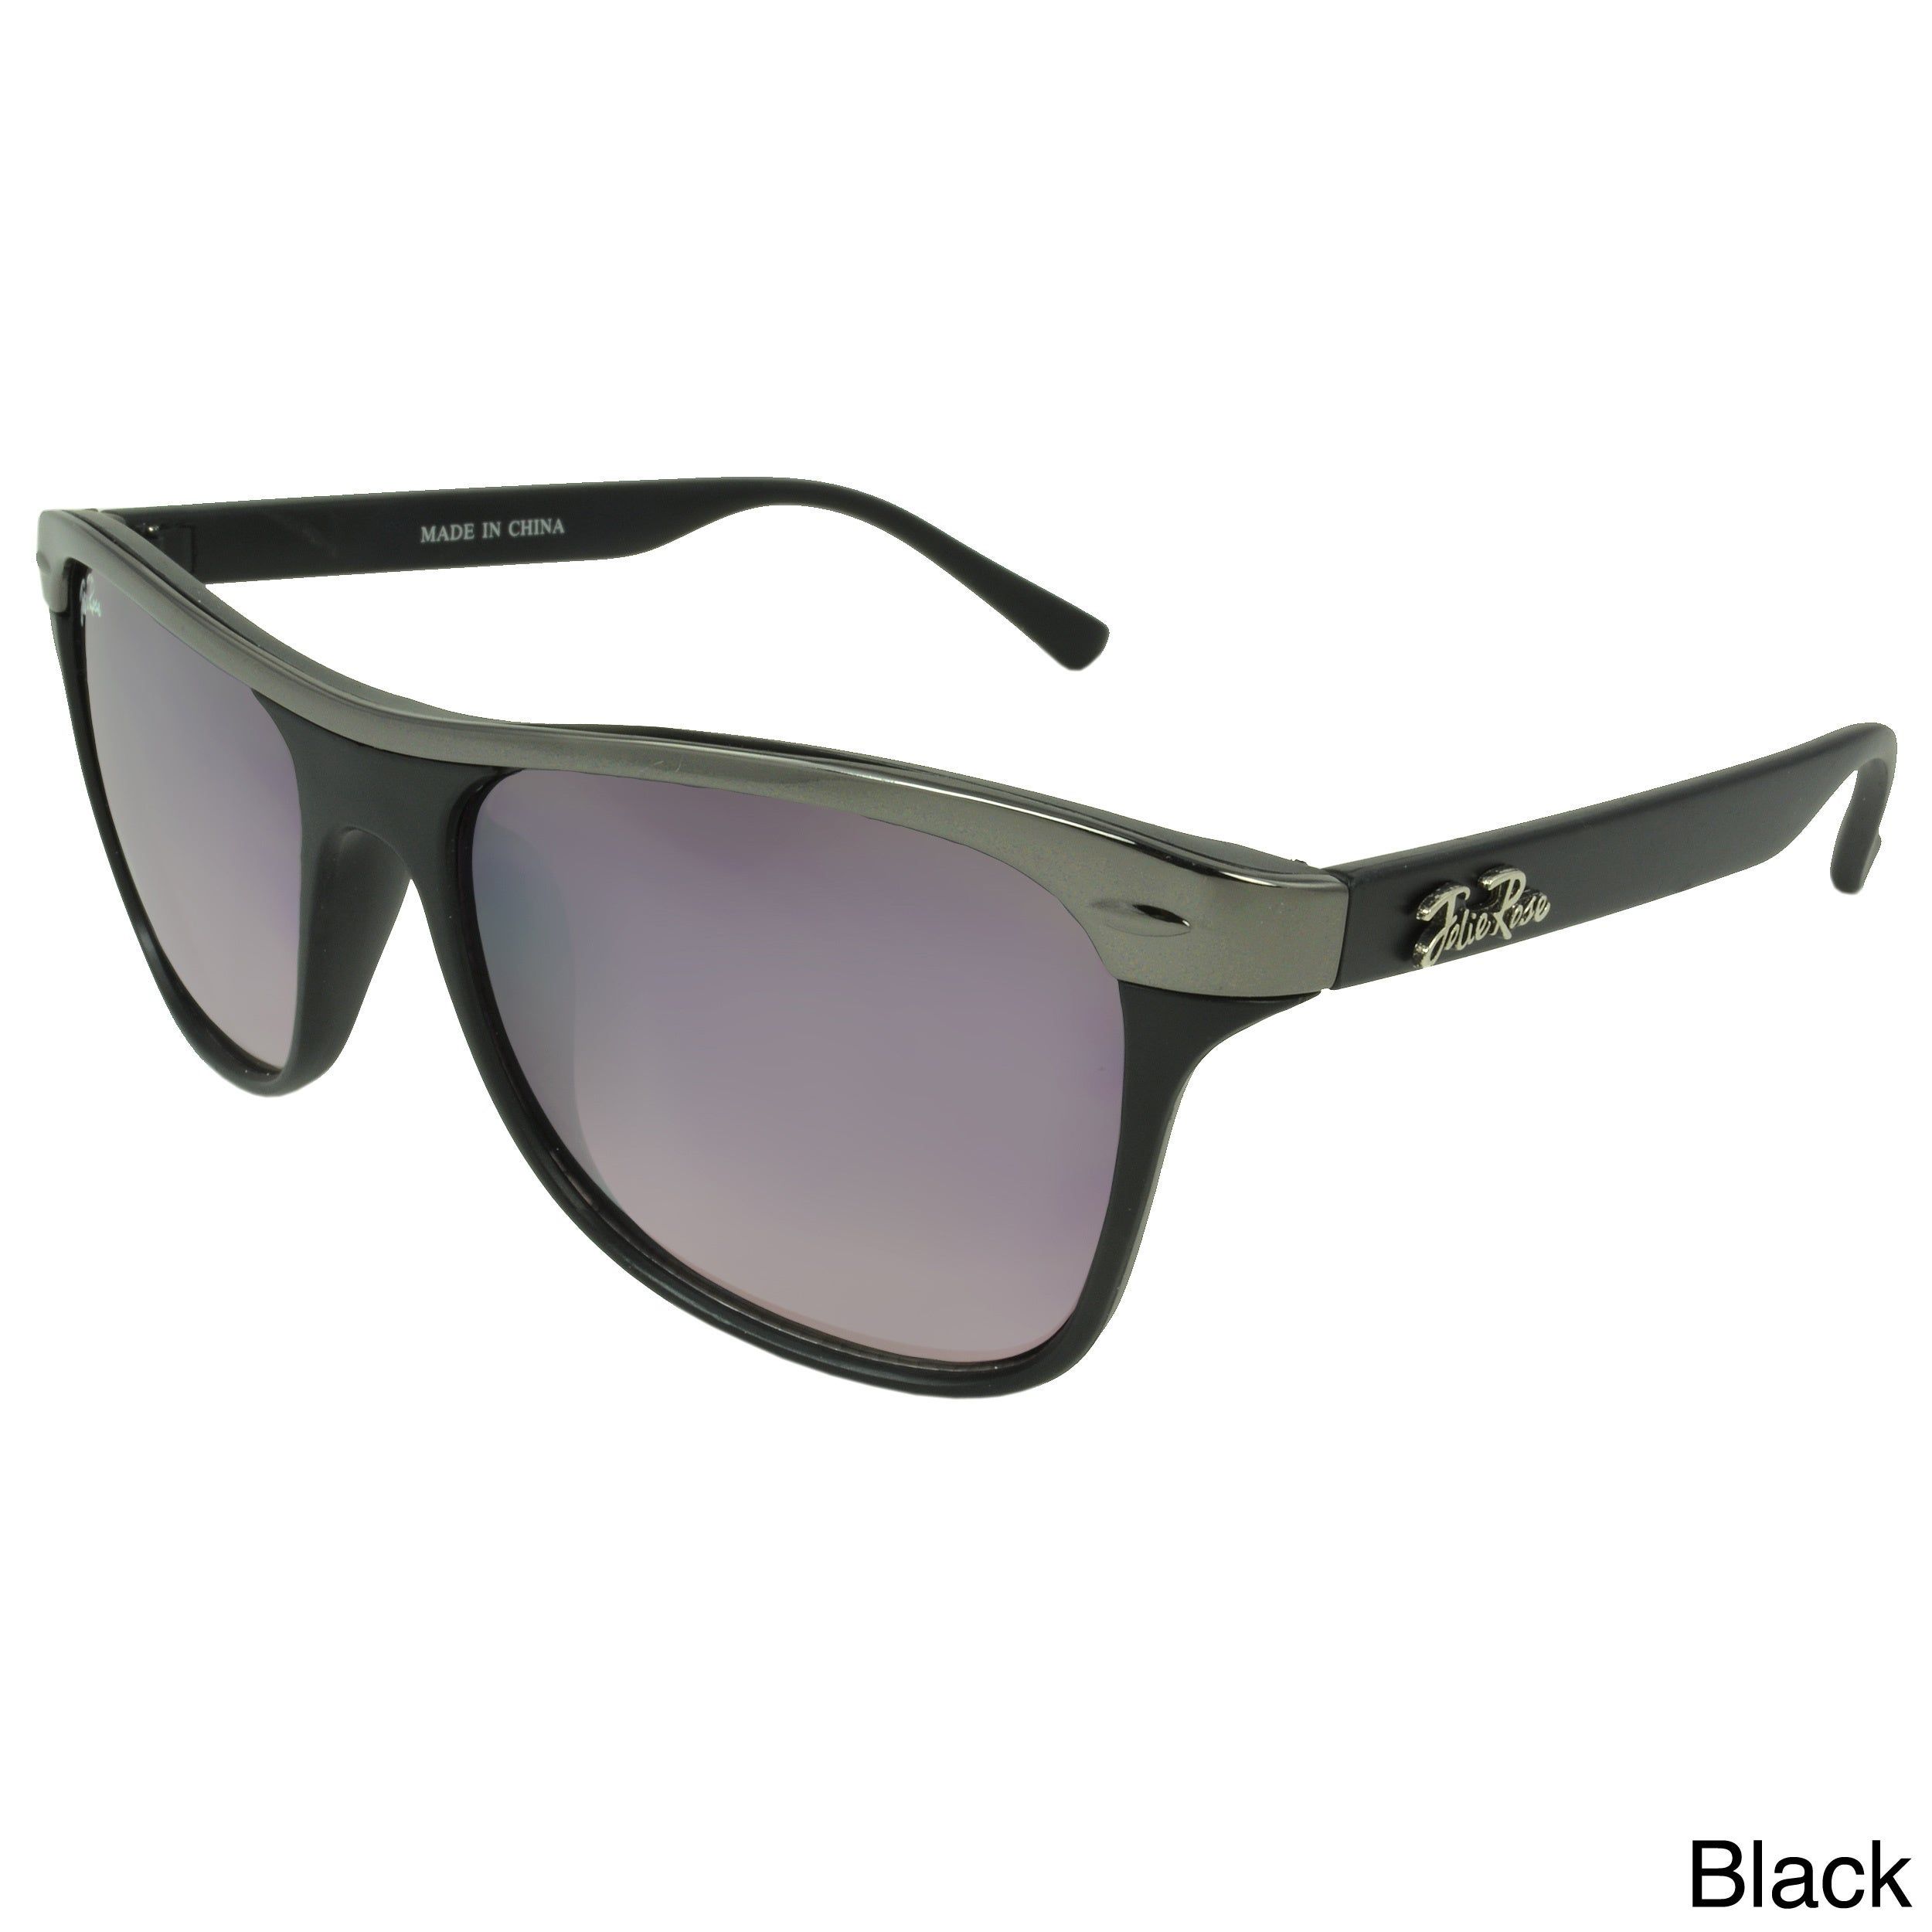 bbf43d2093 Shop Jolie Rose Eyewear  Fiona  Shield Fashion Sunglasses - Free Shipping  On Orders Over  45 - Overstock - 8896236